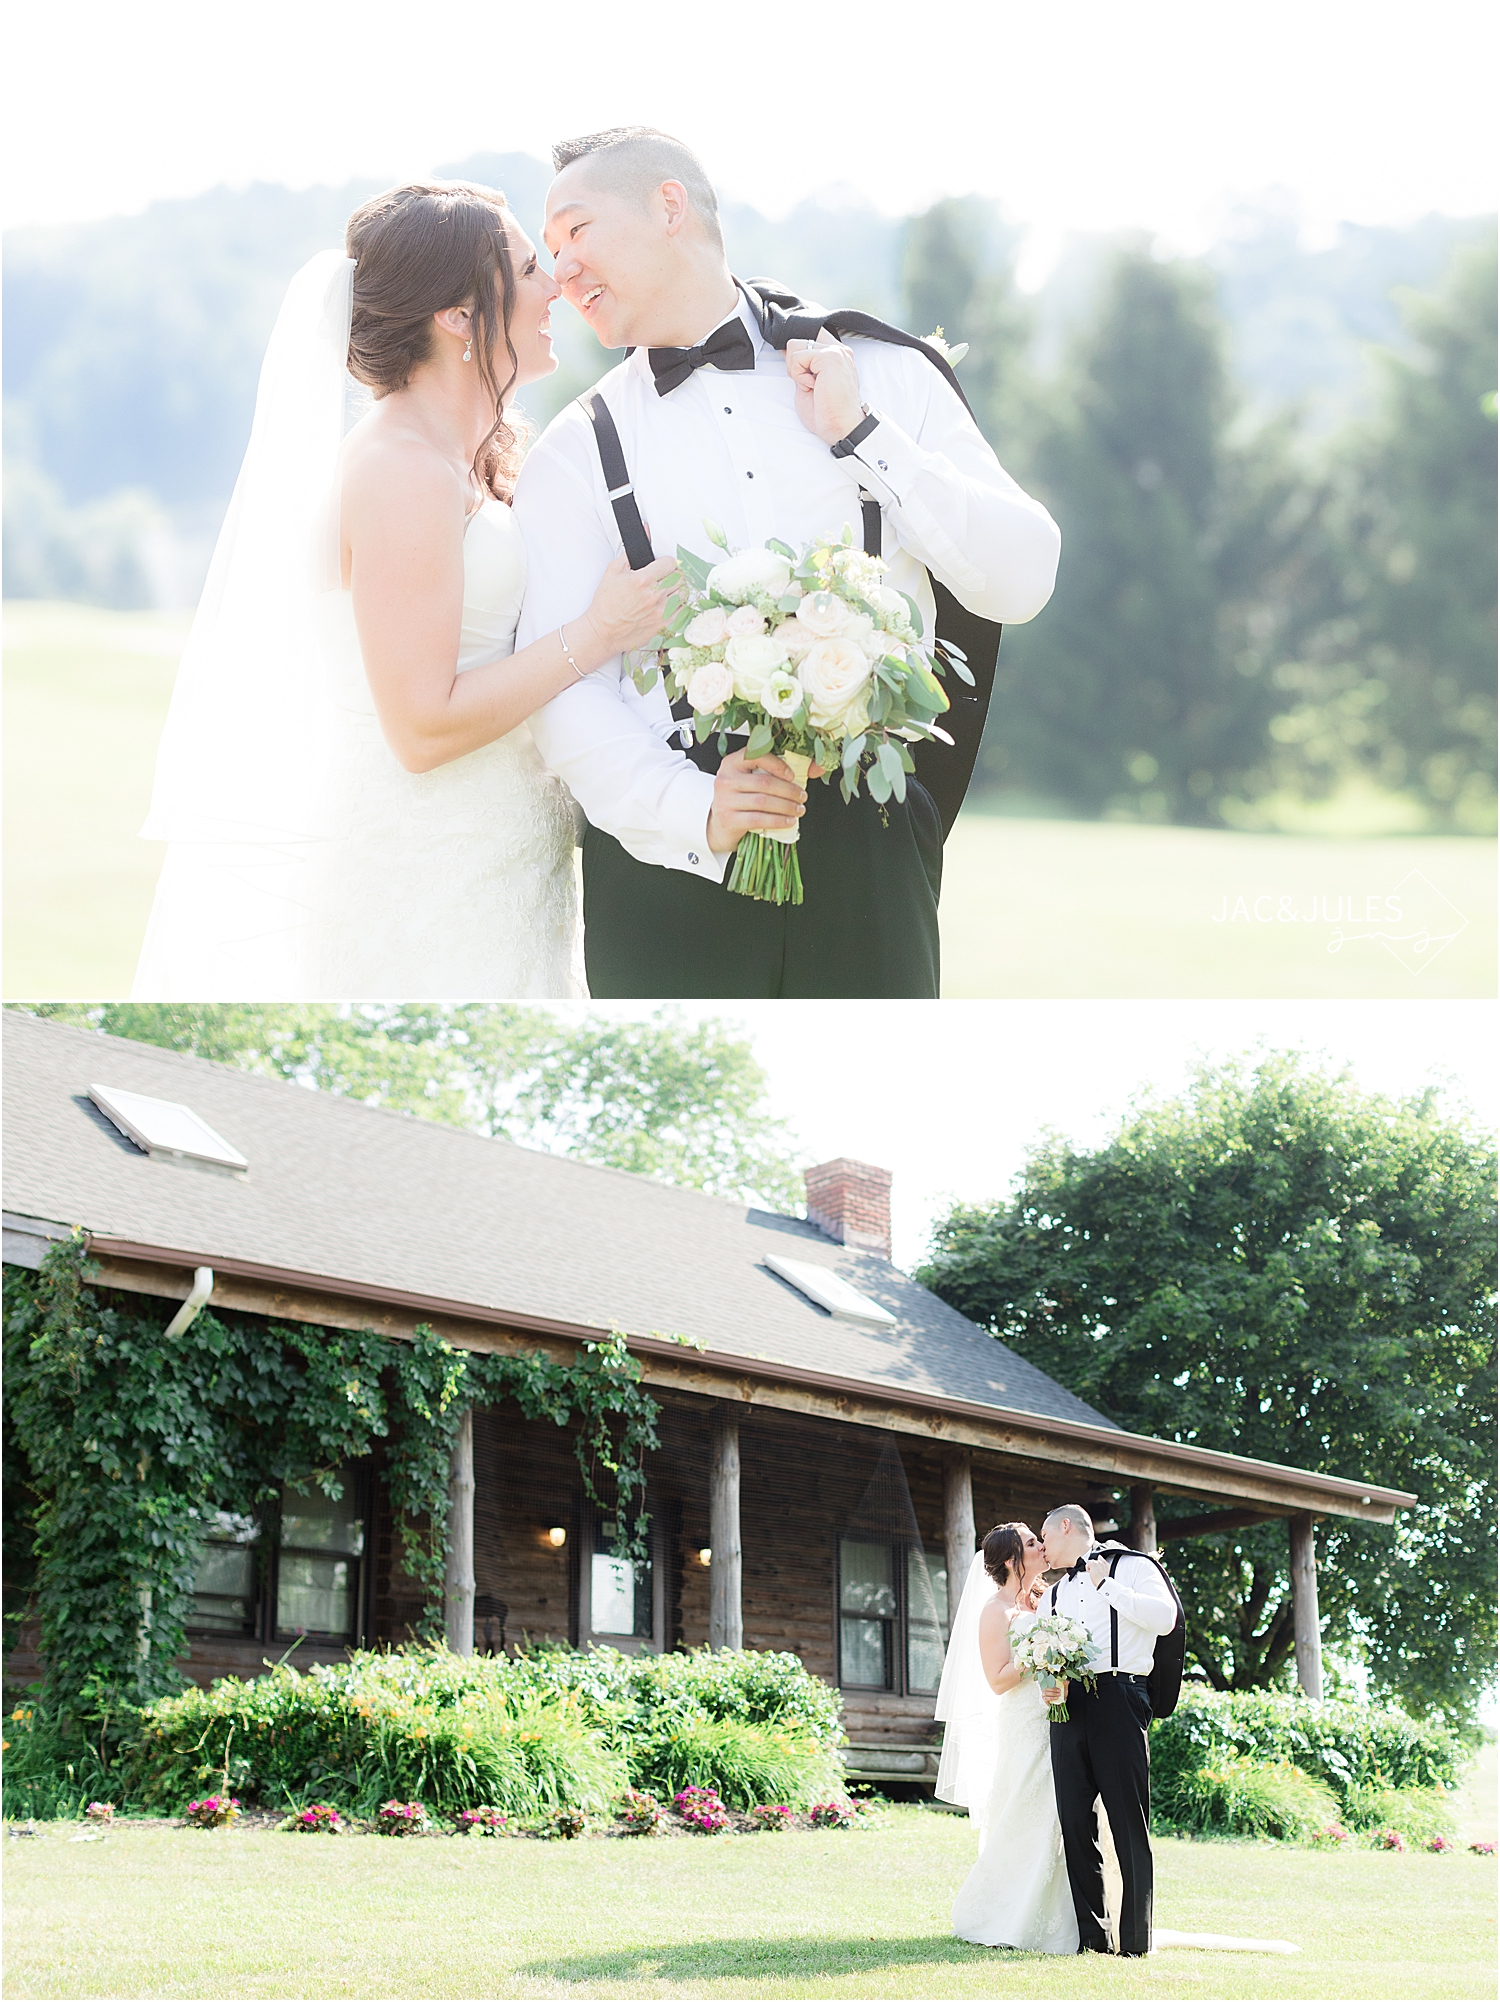 Wedding portraits in natural light at Skyview Golf Club in North Jersey